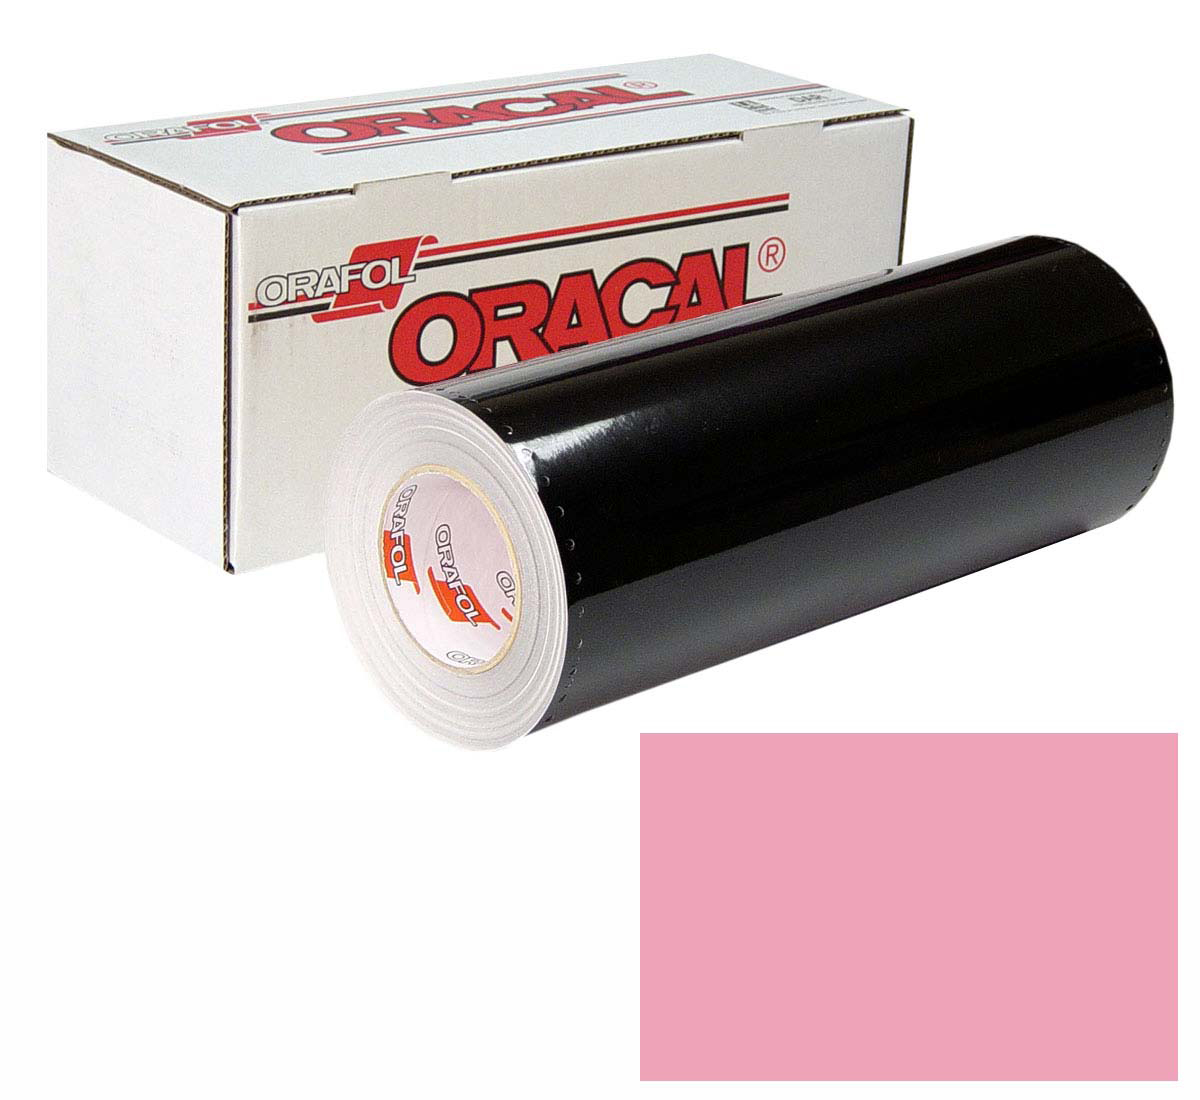 ORACAL 641 Unp 24in X 50yd 045 Soft Pink